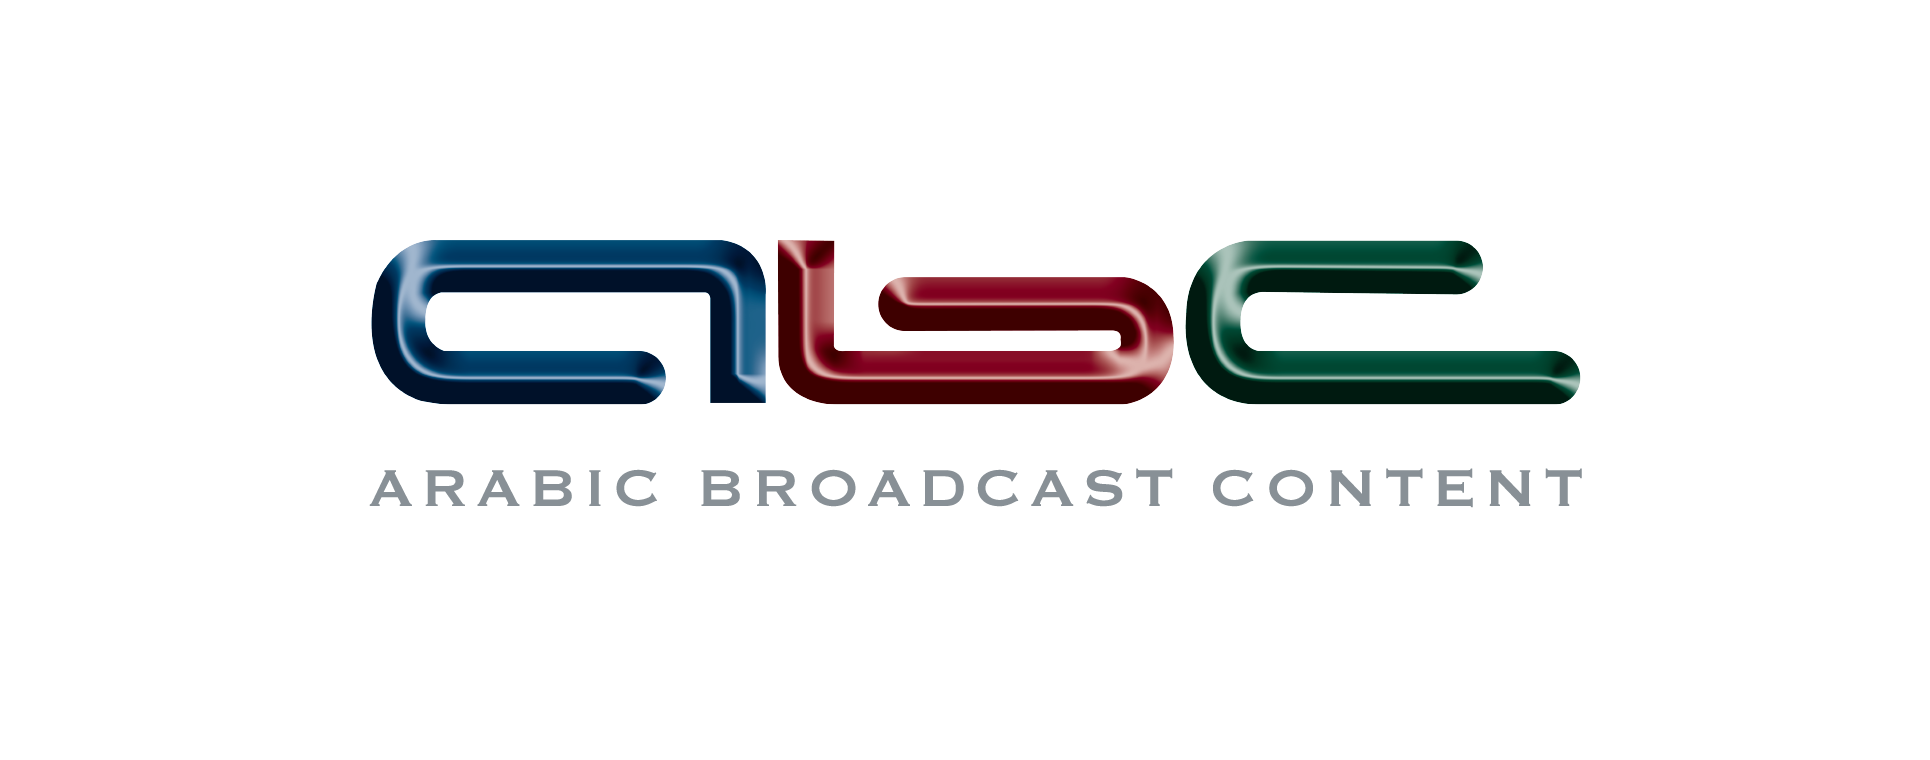 DISCOP MENA is organized in partnership with ABC -